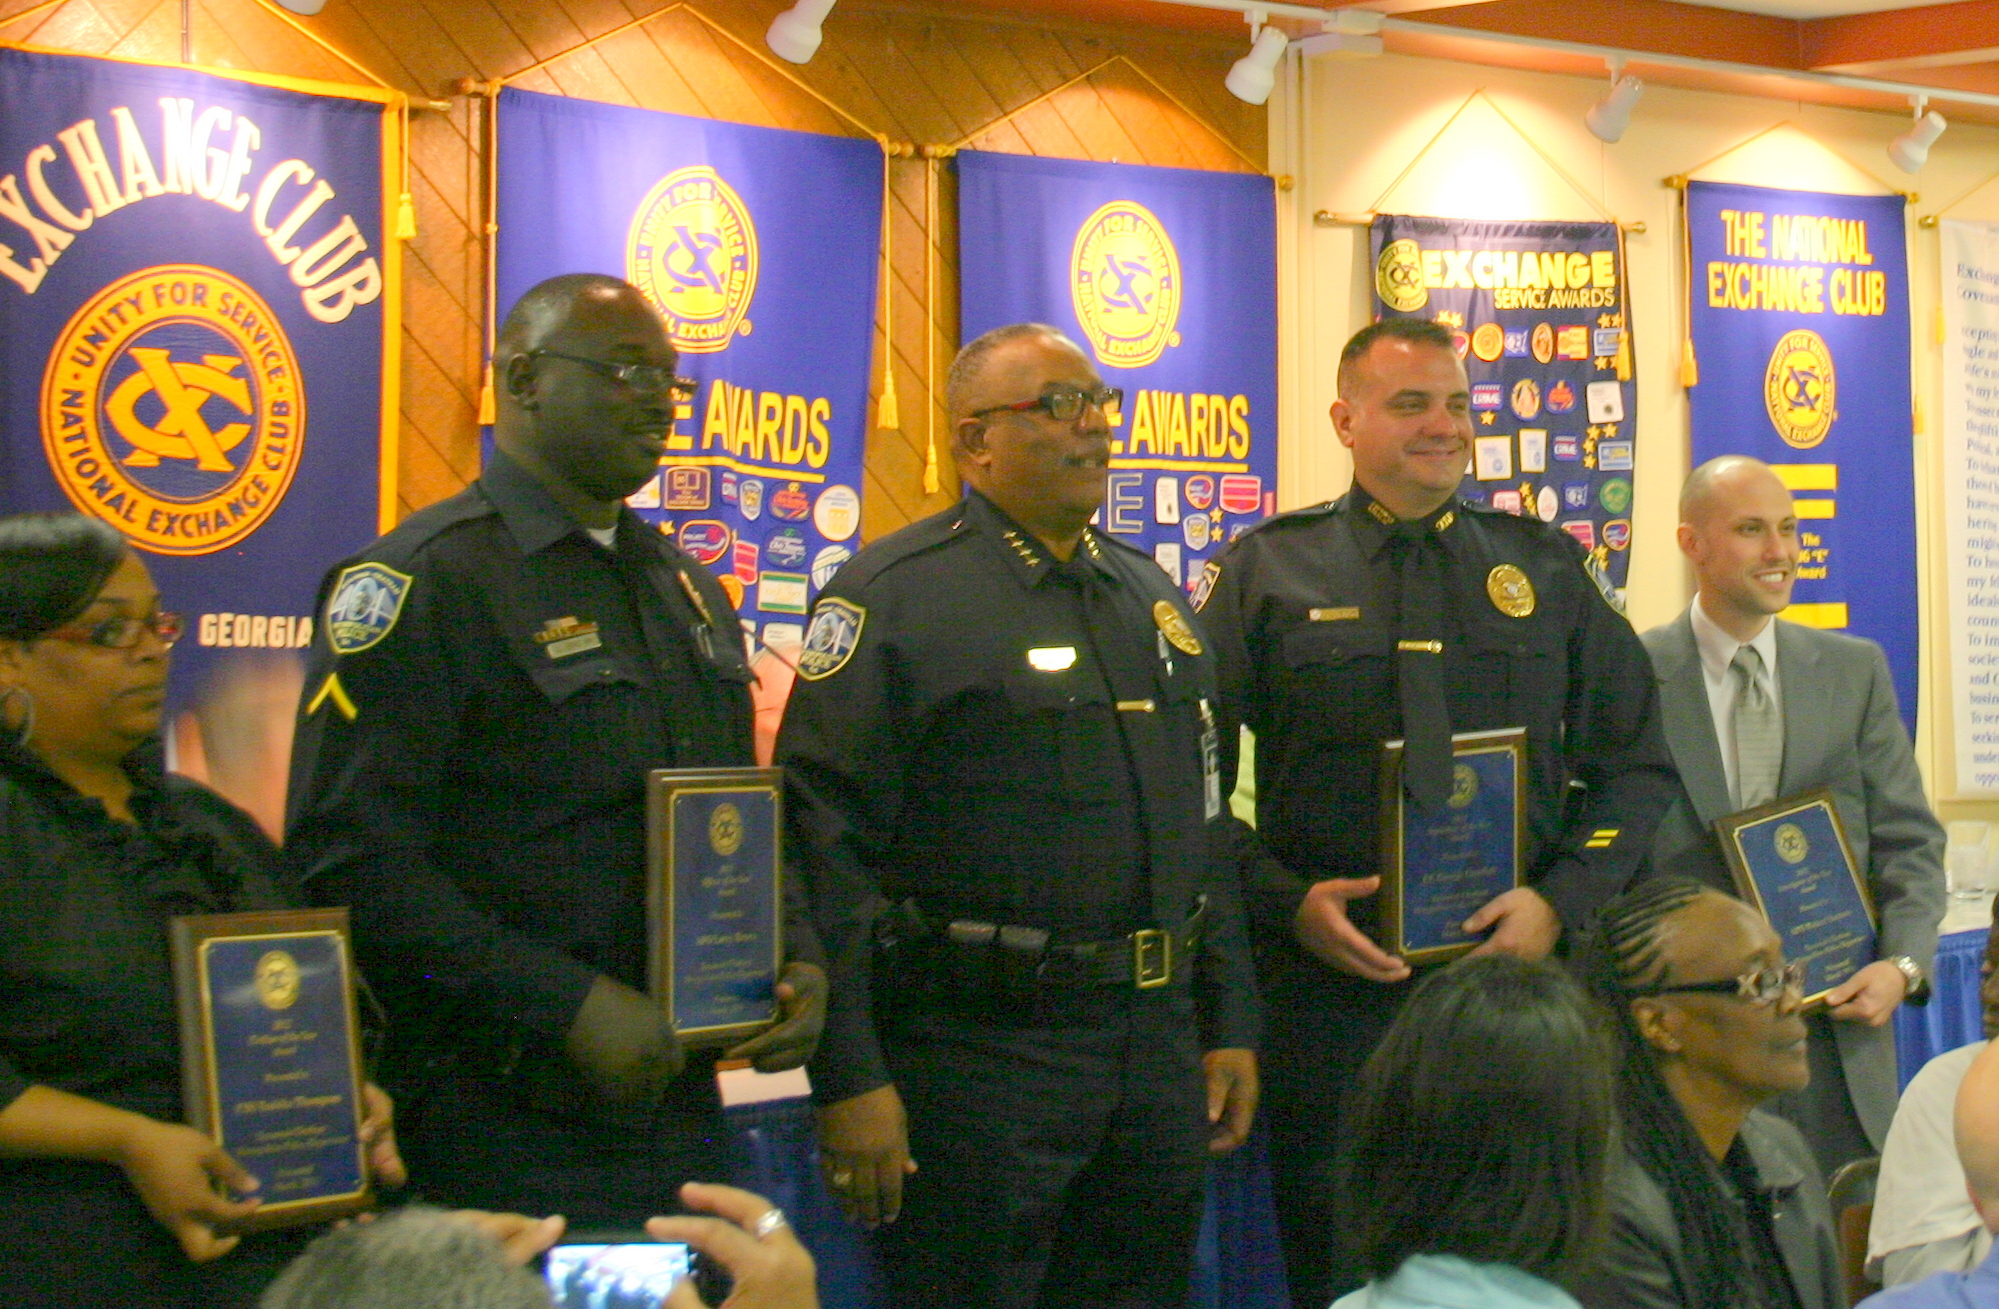 PHOTO: Civilian of the Year Tanisha Thompson, Officer of the Year Larry Brown, Chief Willie Lovett, Supervisor of the Year George Gundich and Investigator of the Year Robert Santoro